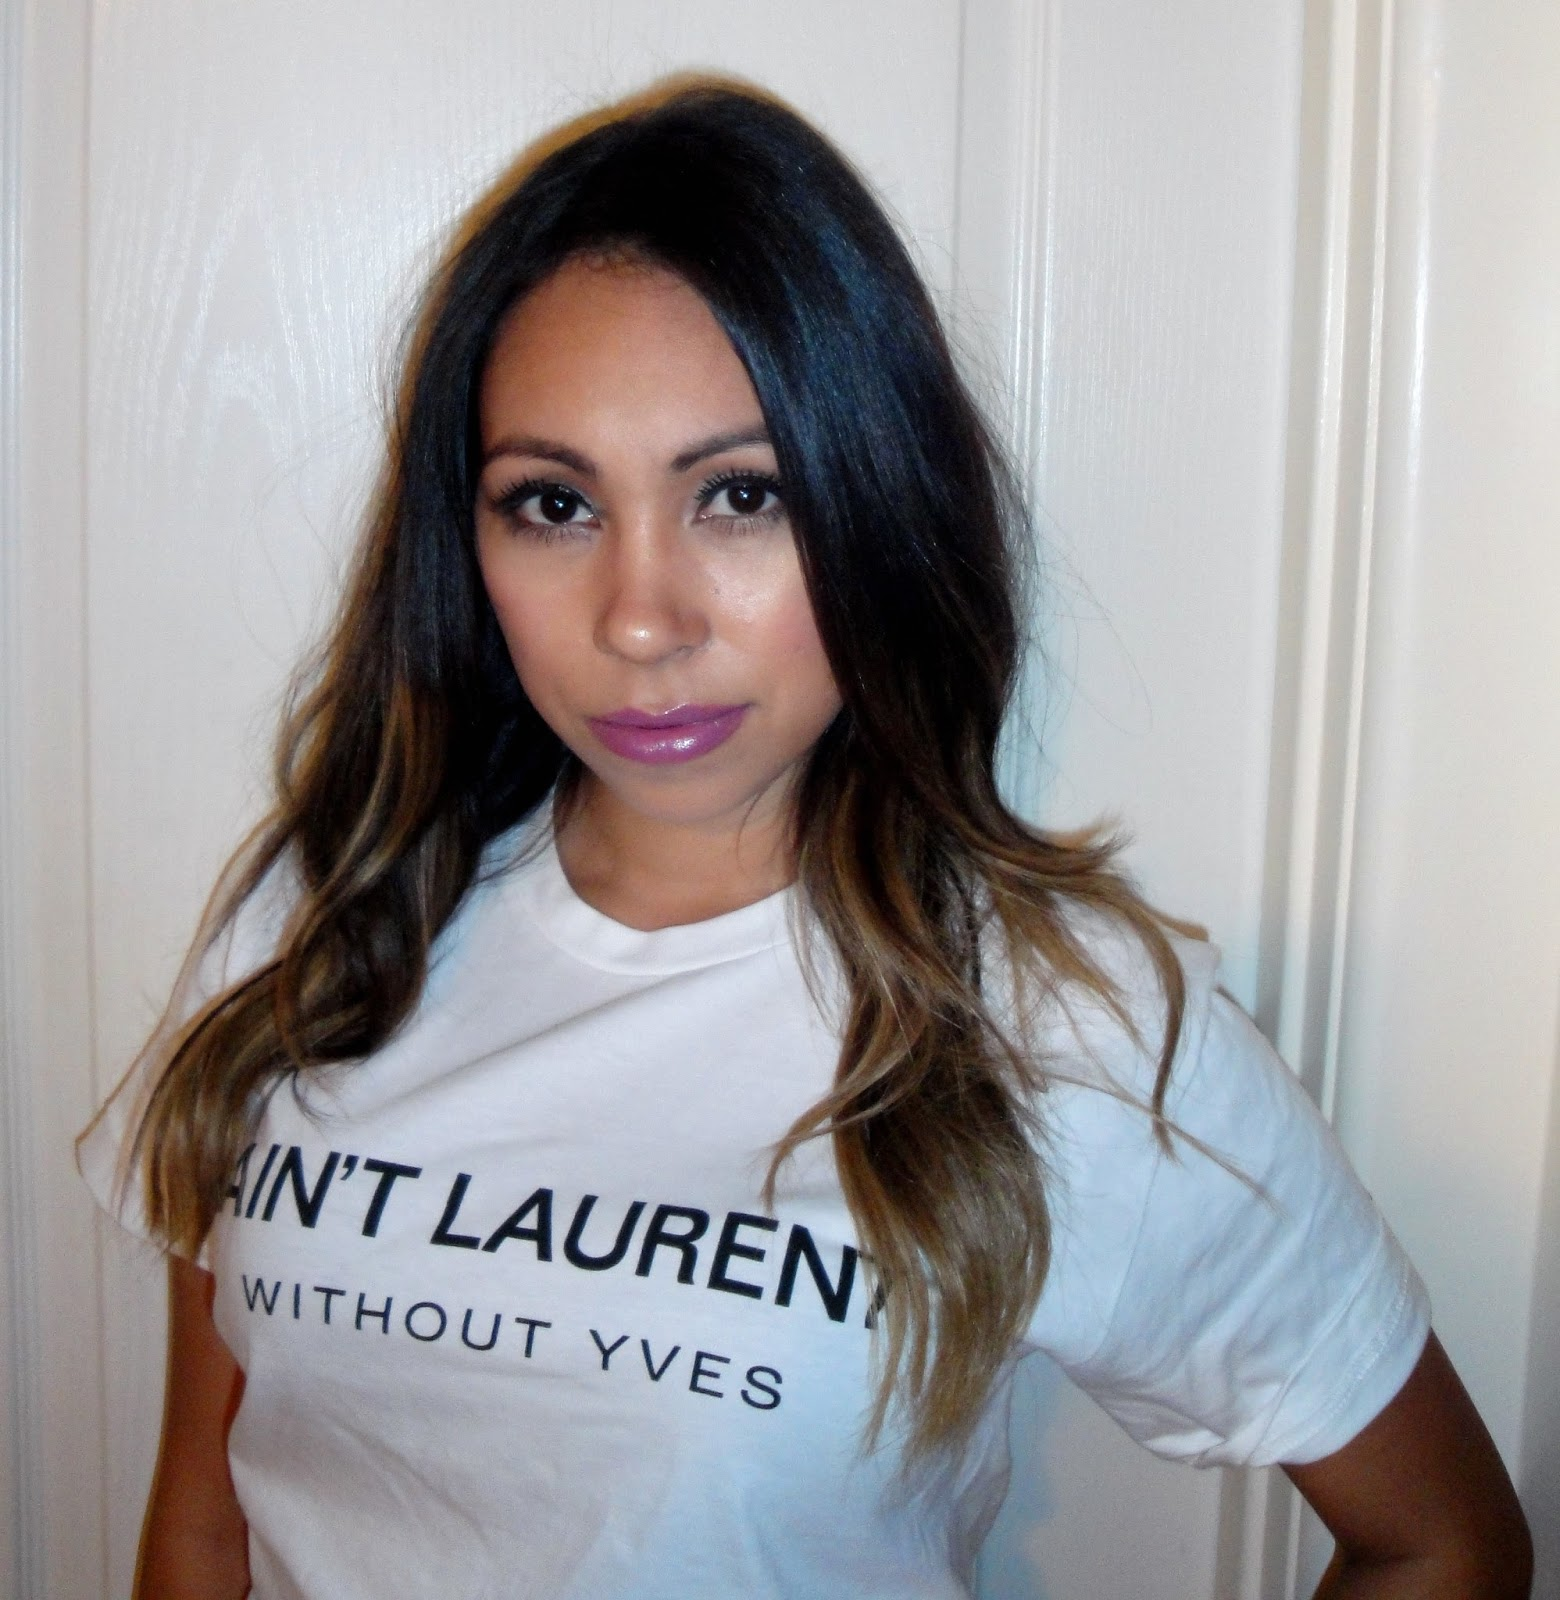 Denise Chavez : Ain't Laurent Without Yves